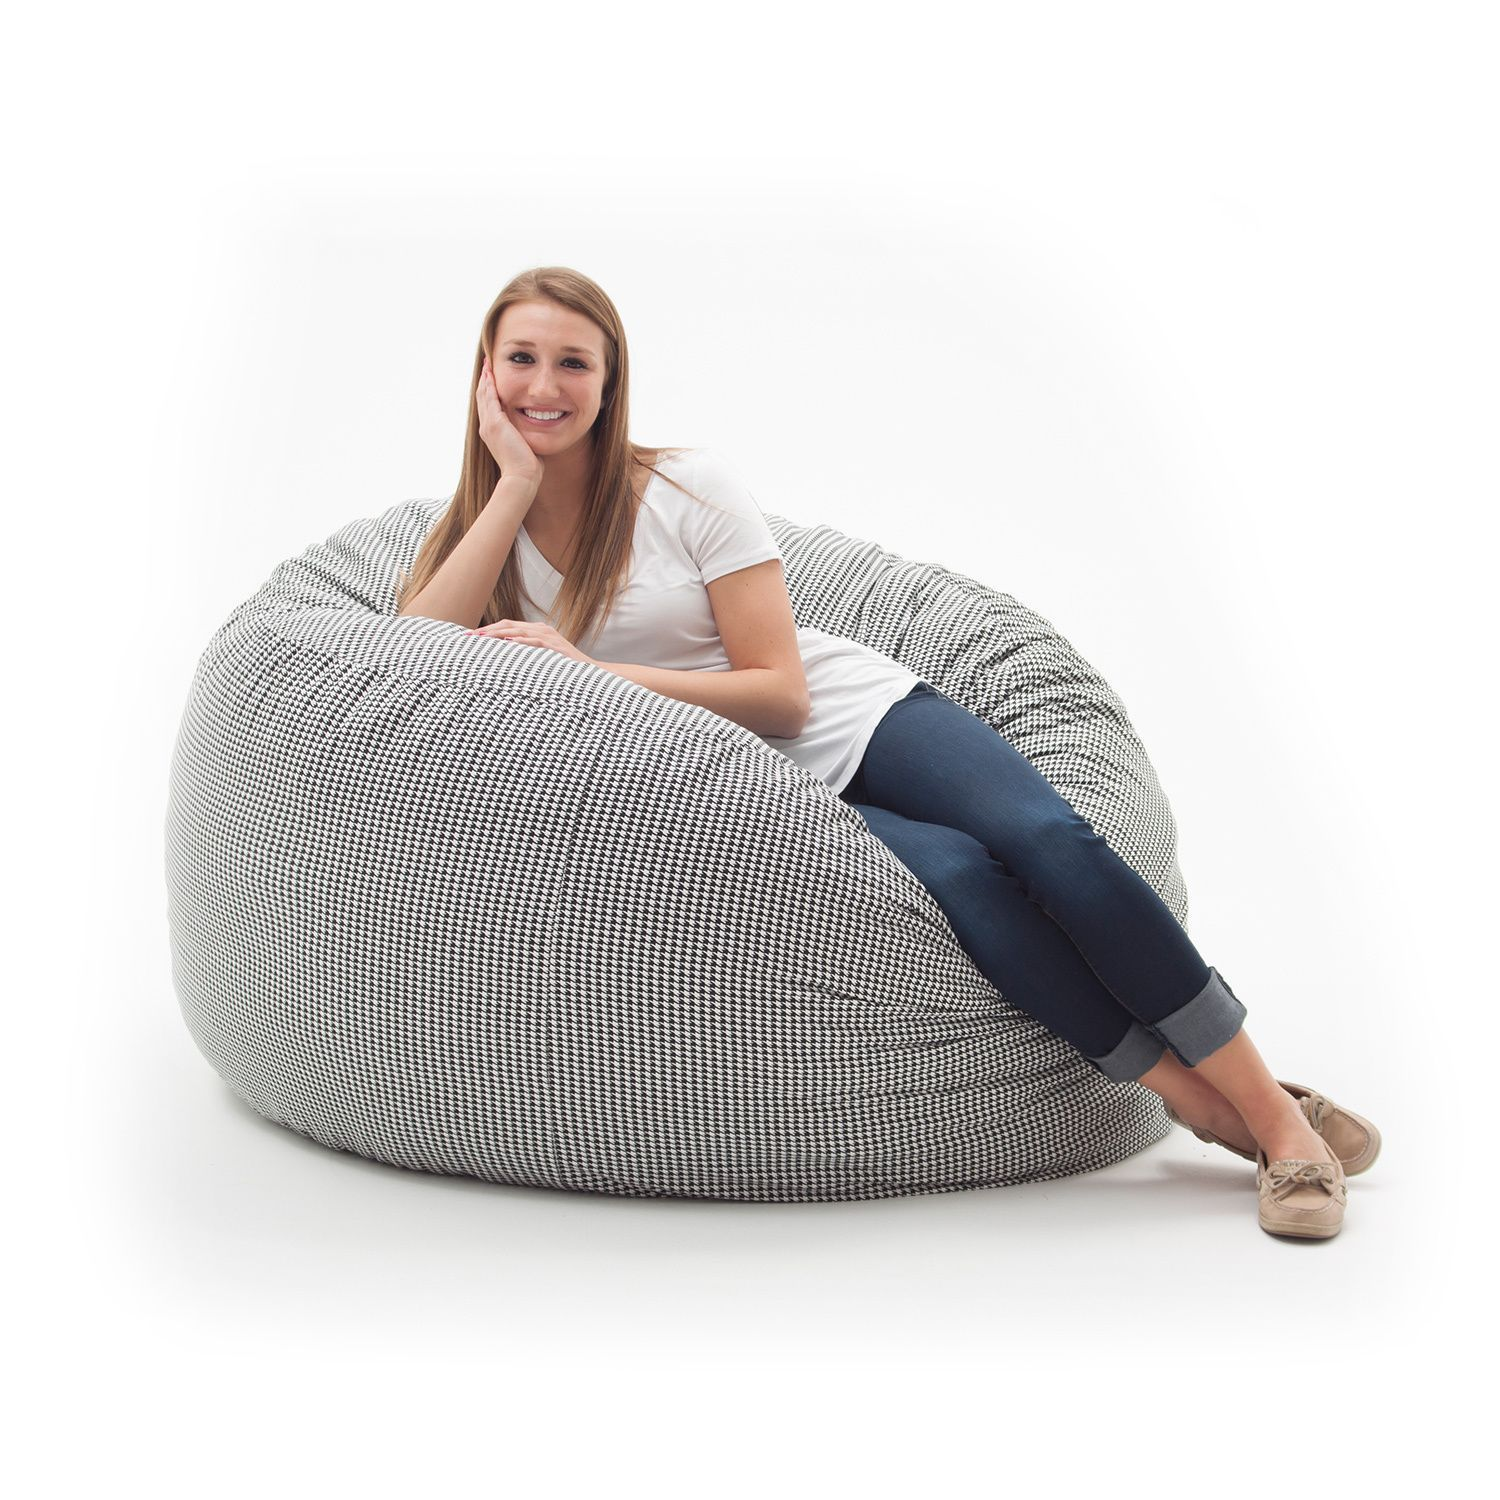 Spend Hours Relaxing In This Comfortable And Durable Fufsack Memory Foam Lounge Bean Bag Chair The Is Perfect To Use While Watching